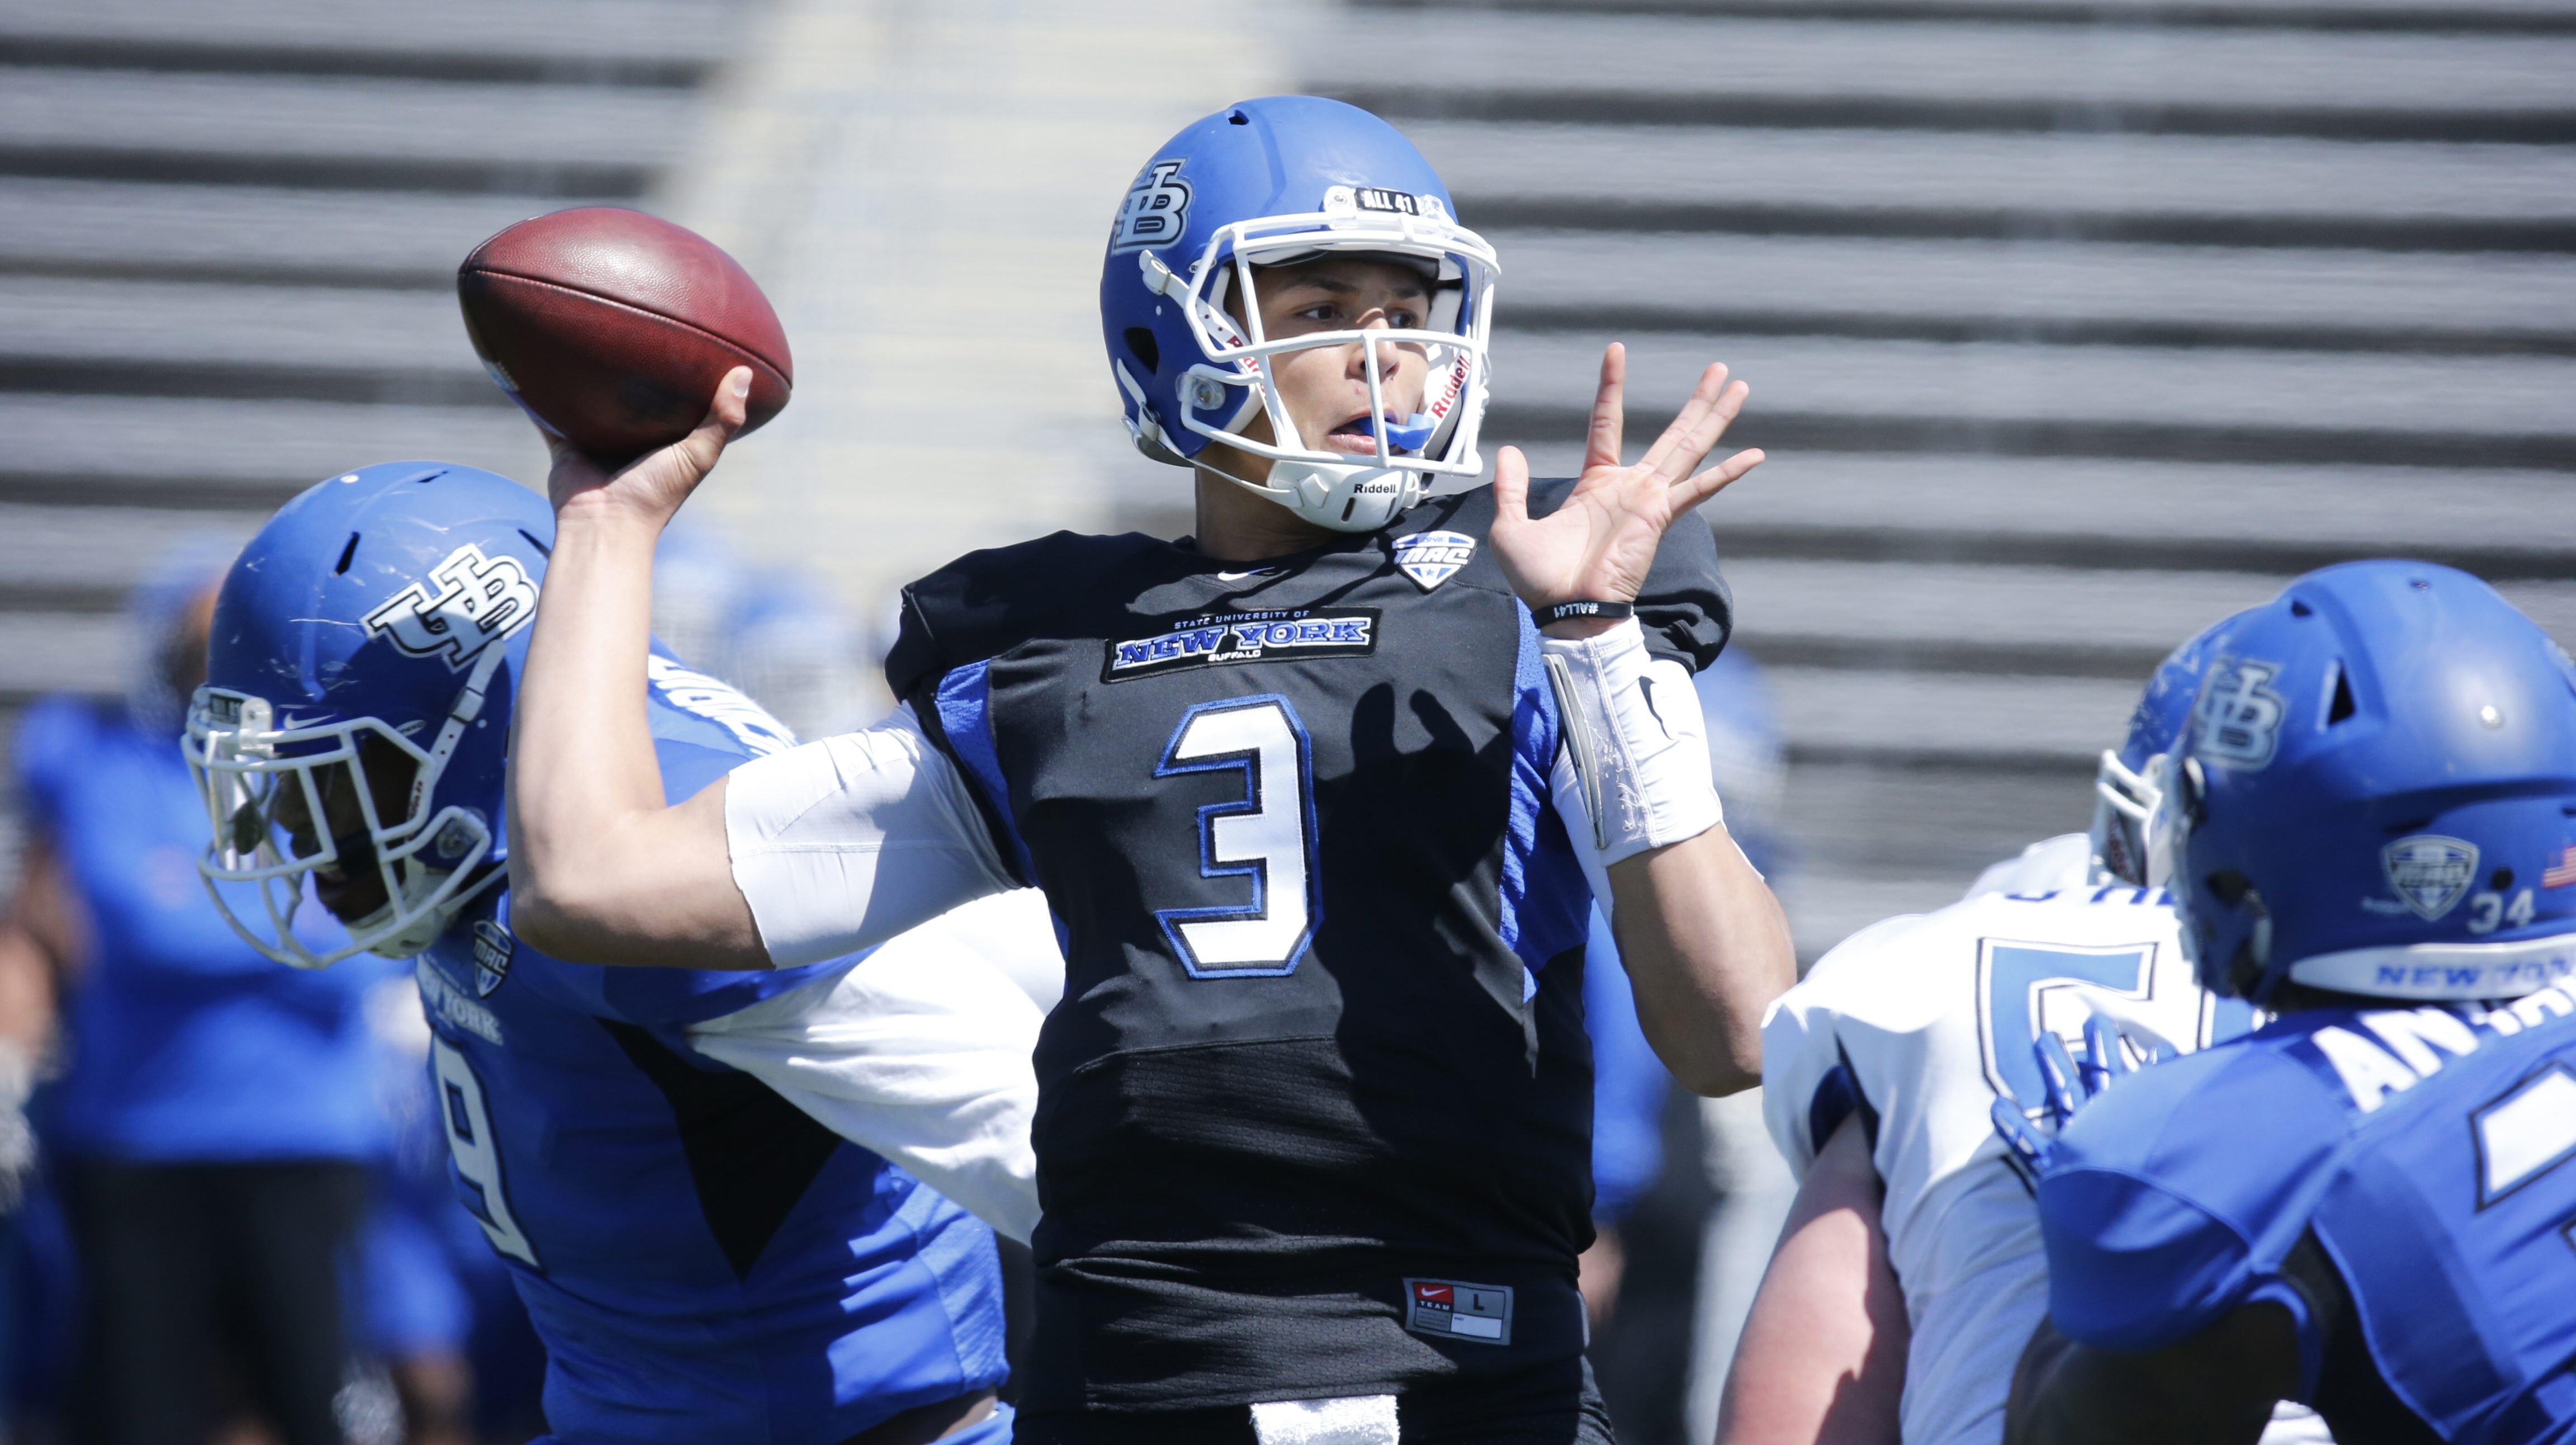 One of the big questions about UB's football team this season is whether Tyree Jackson is ready to take over as starting quarterback.